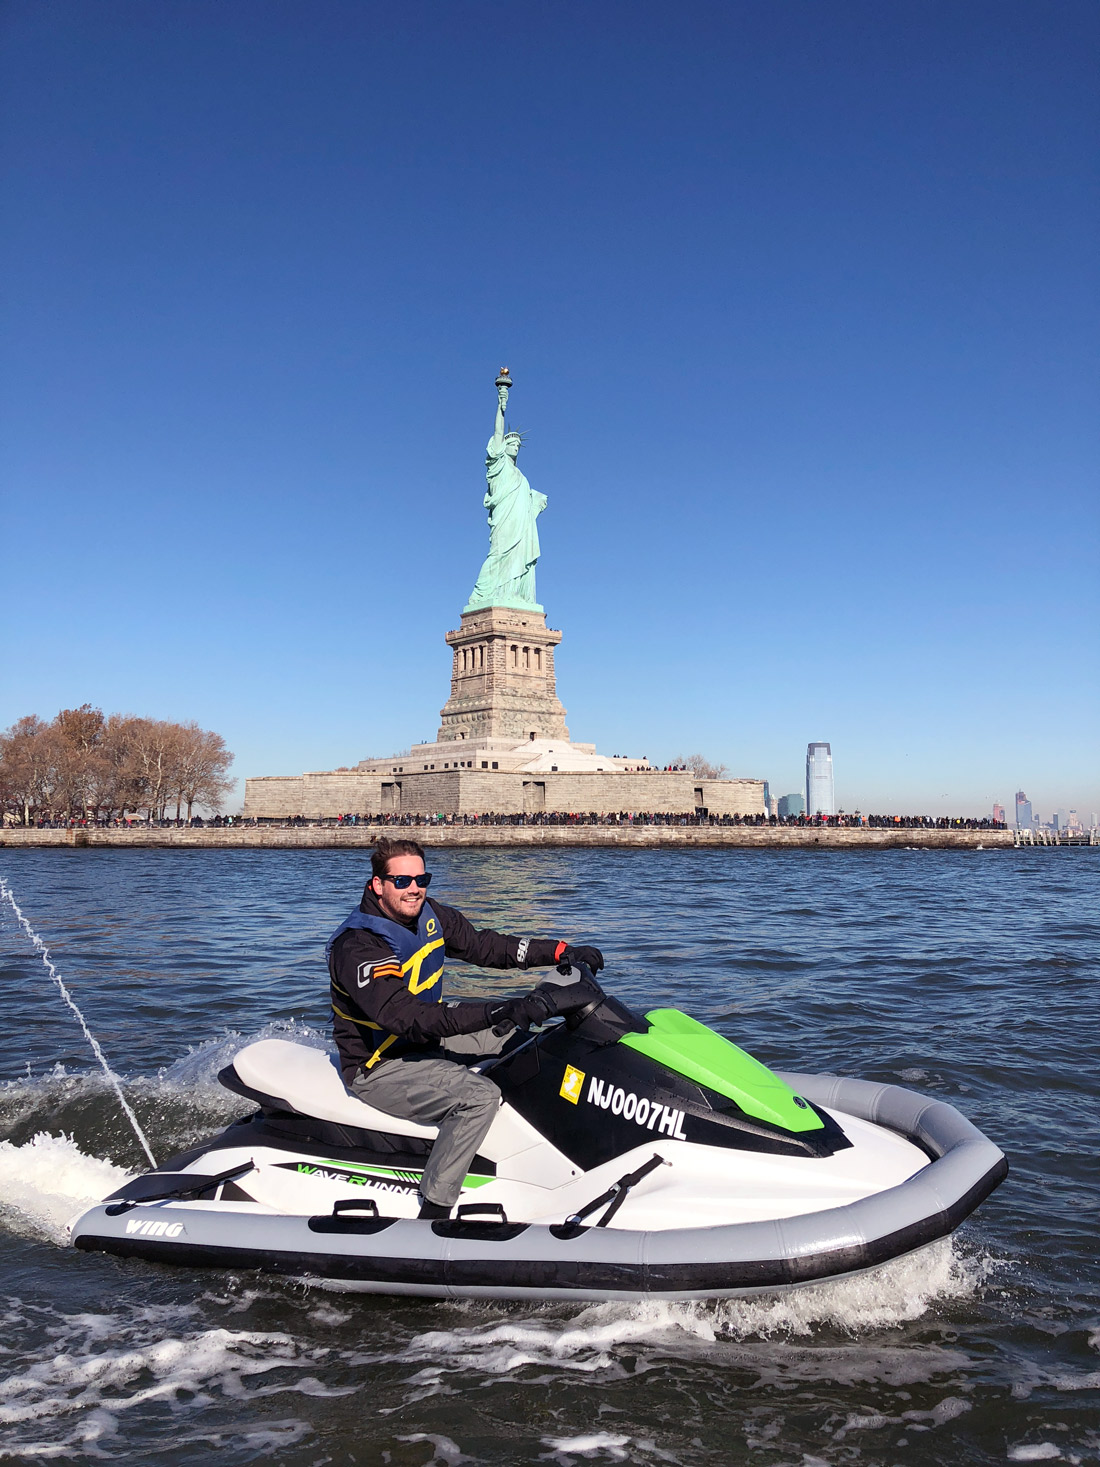 Bag-at-you---Jet-Ski-next-to-the-Statue-of-Liberty